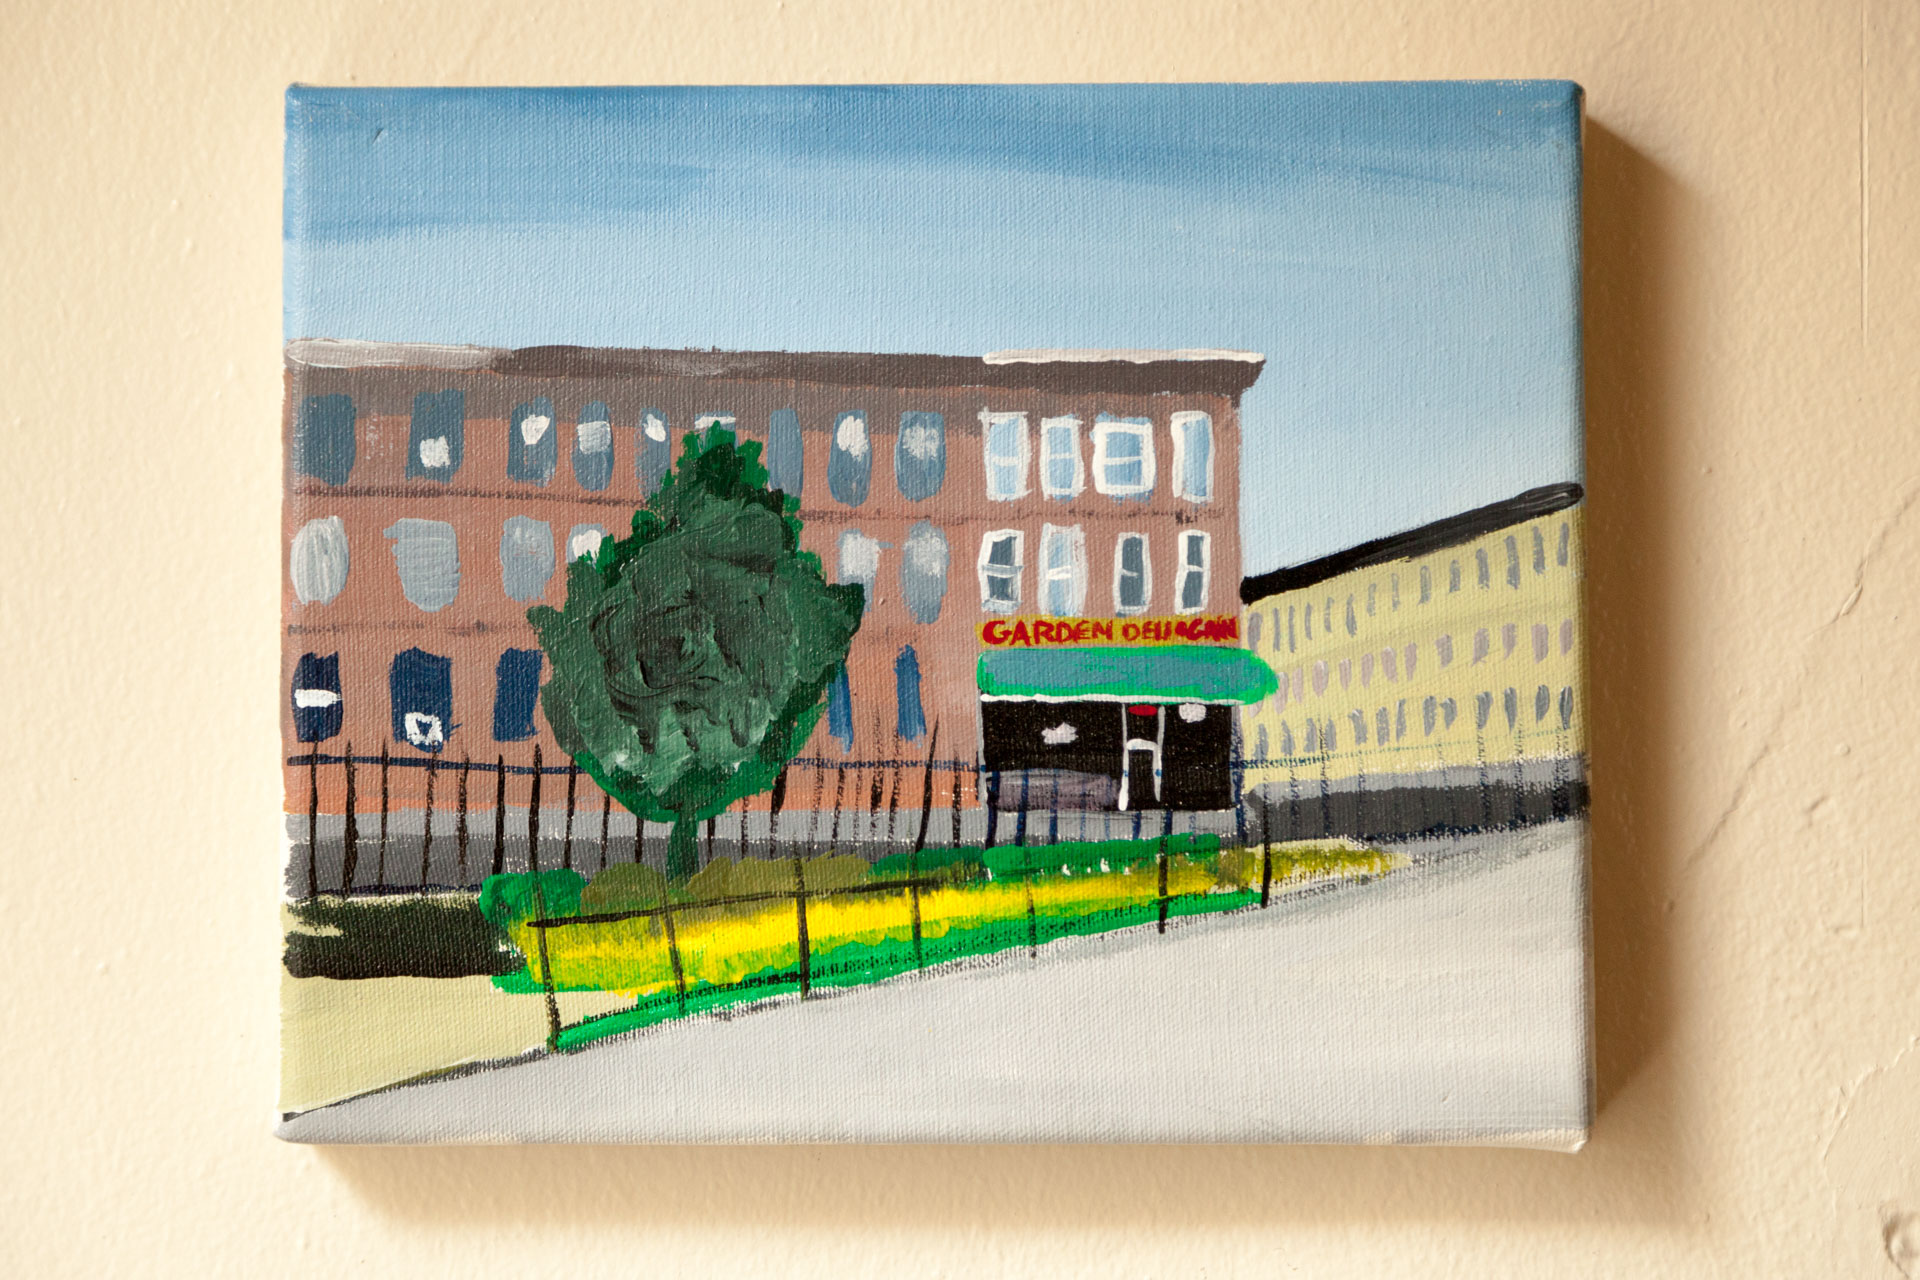 "Garden Deli from Maria Hernandez Park, Starr St., Acrylic on Canvas, 8""x10"", 2015"